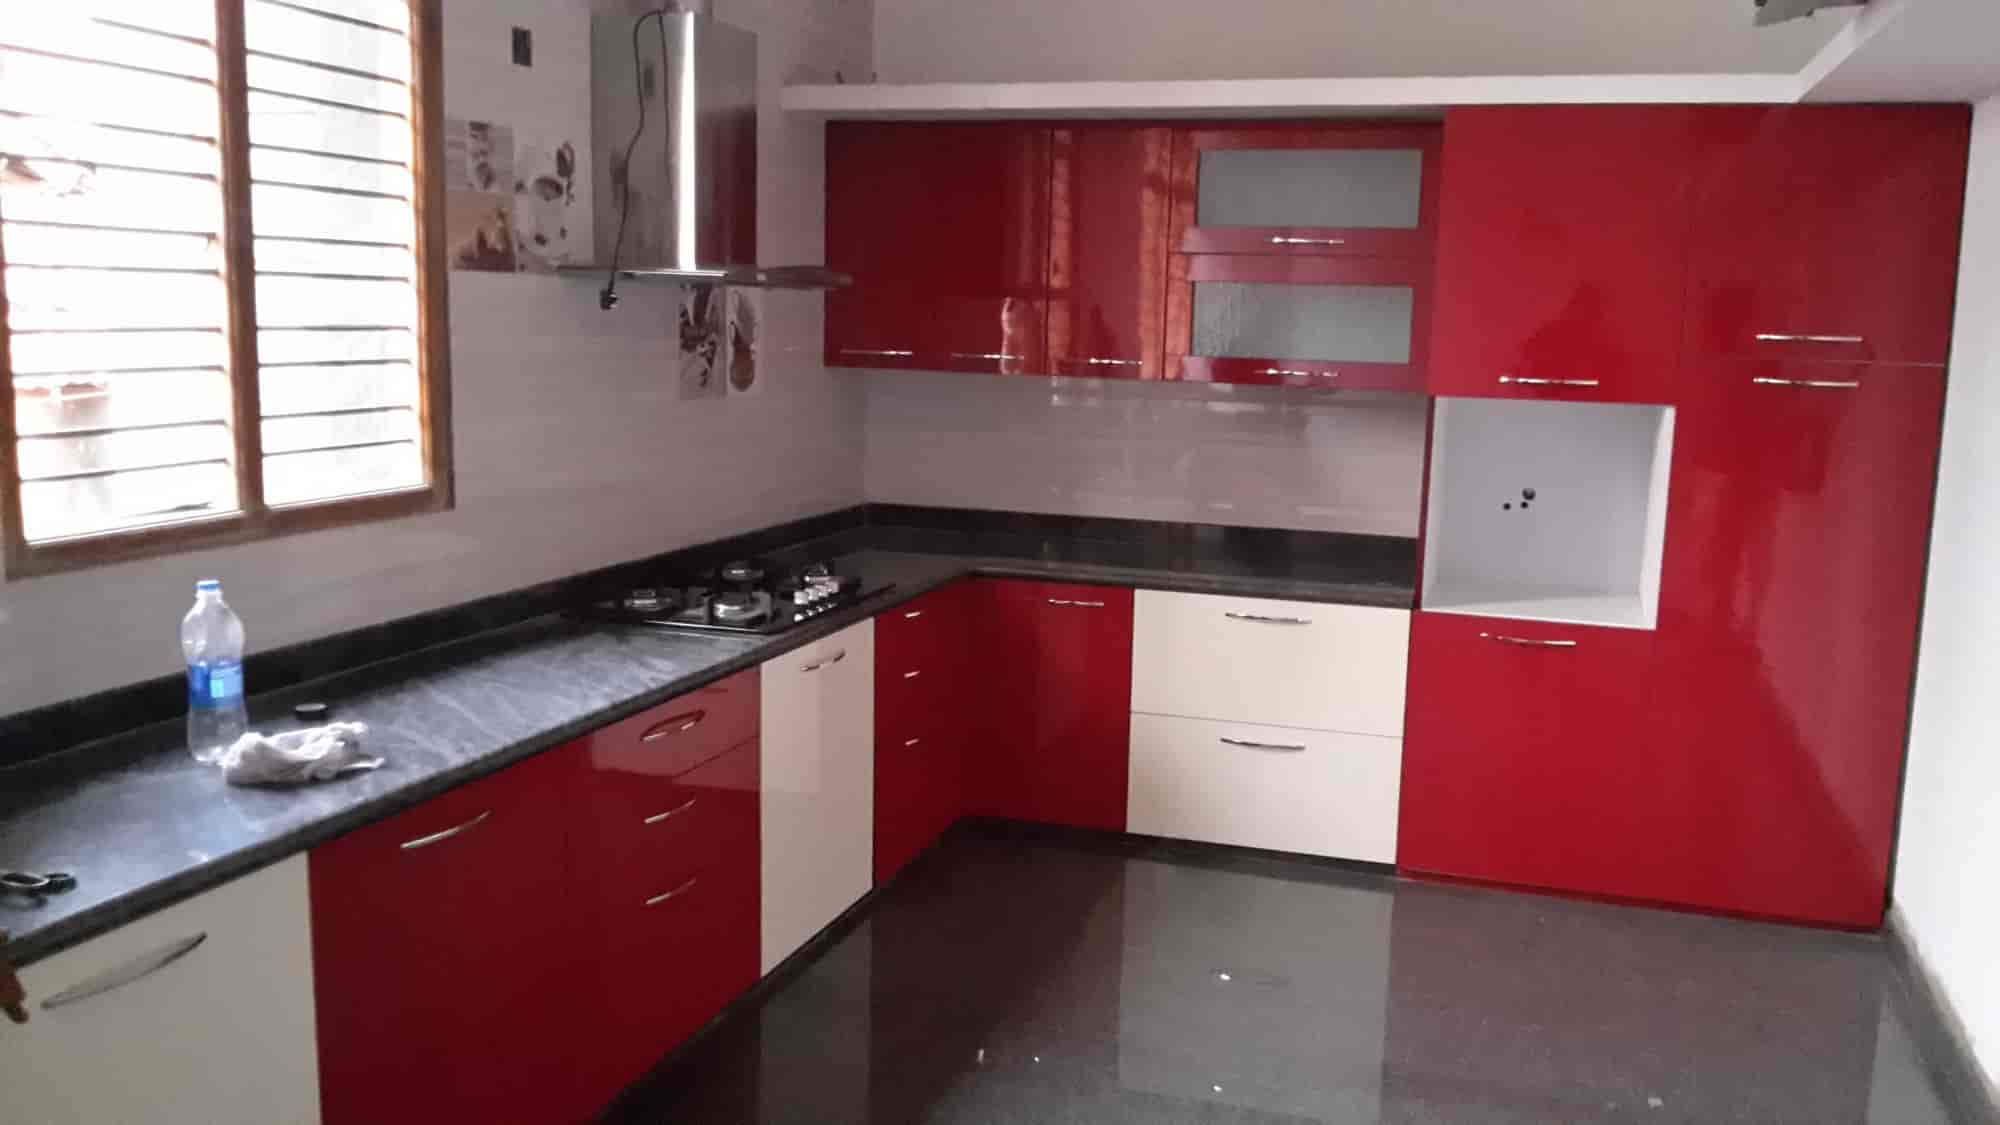 comfort kitchen photos vidyanagar hubli modular kitchen dealers - Comfort Kitchen